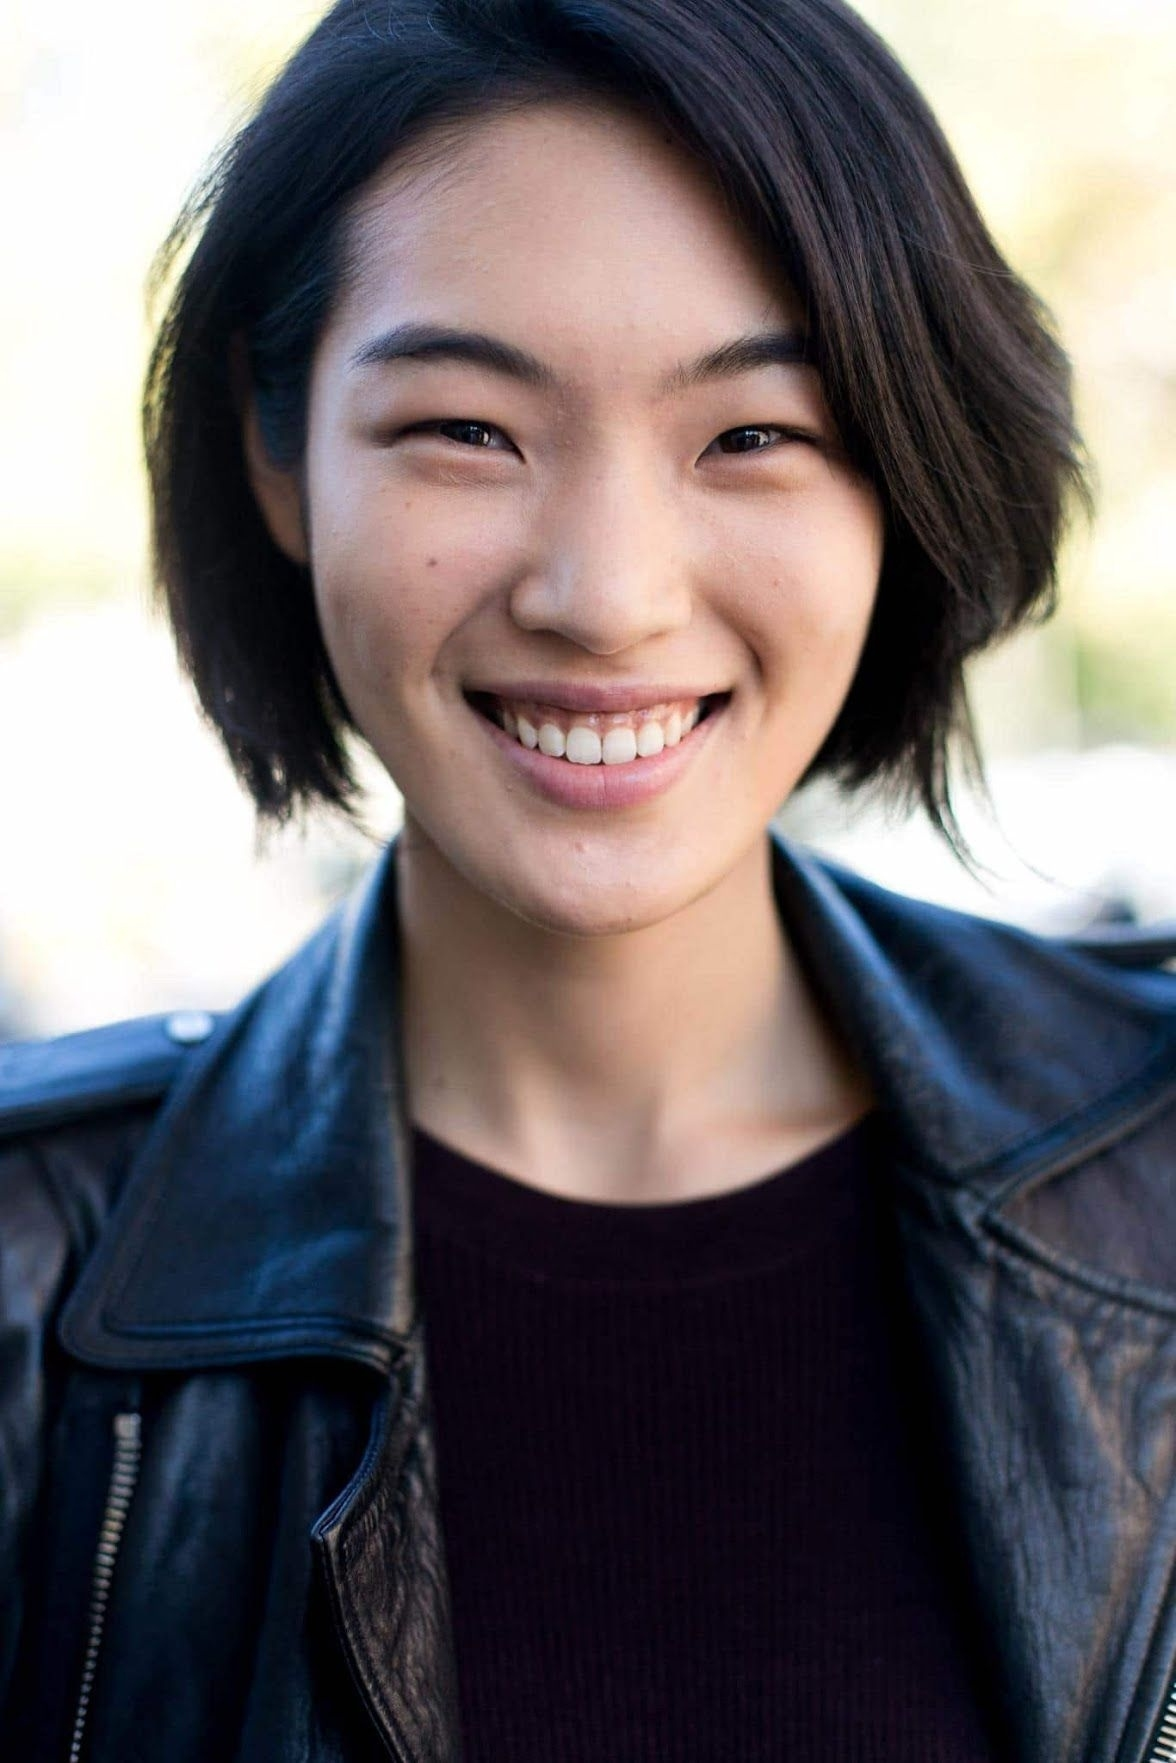 Hairstyles : Short Haircuts For Asian Women Winning Asian Short Hair within The best Asian Short Hairstyle Female